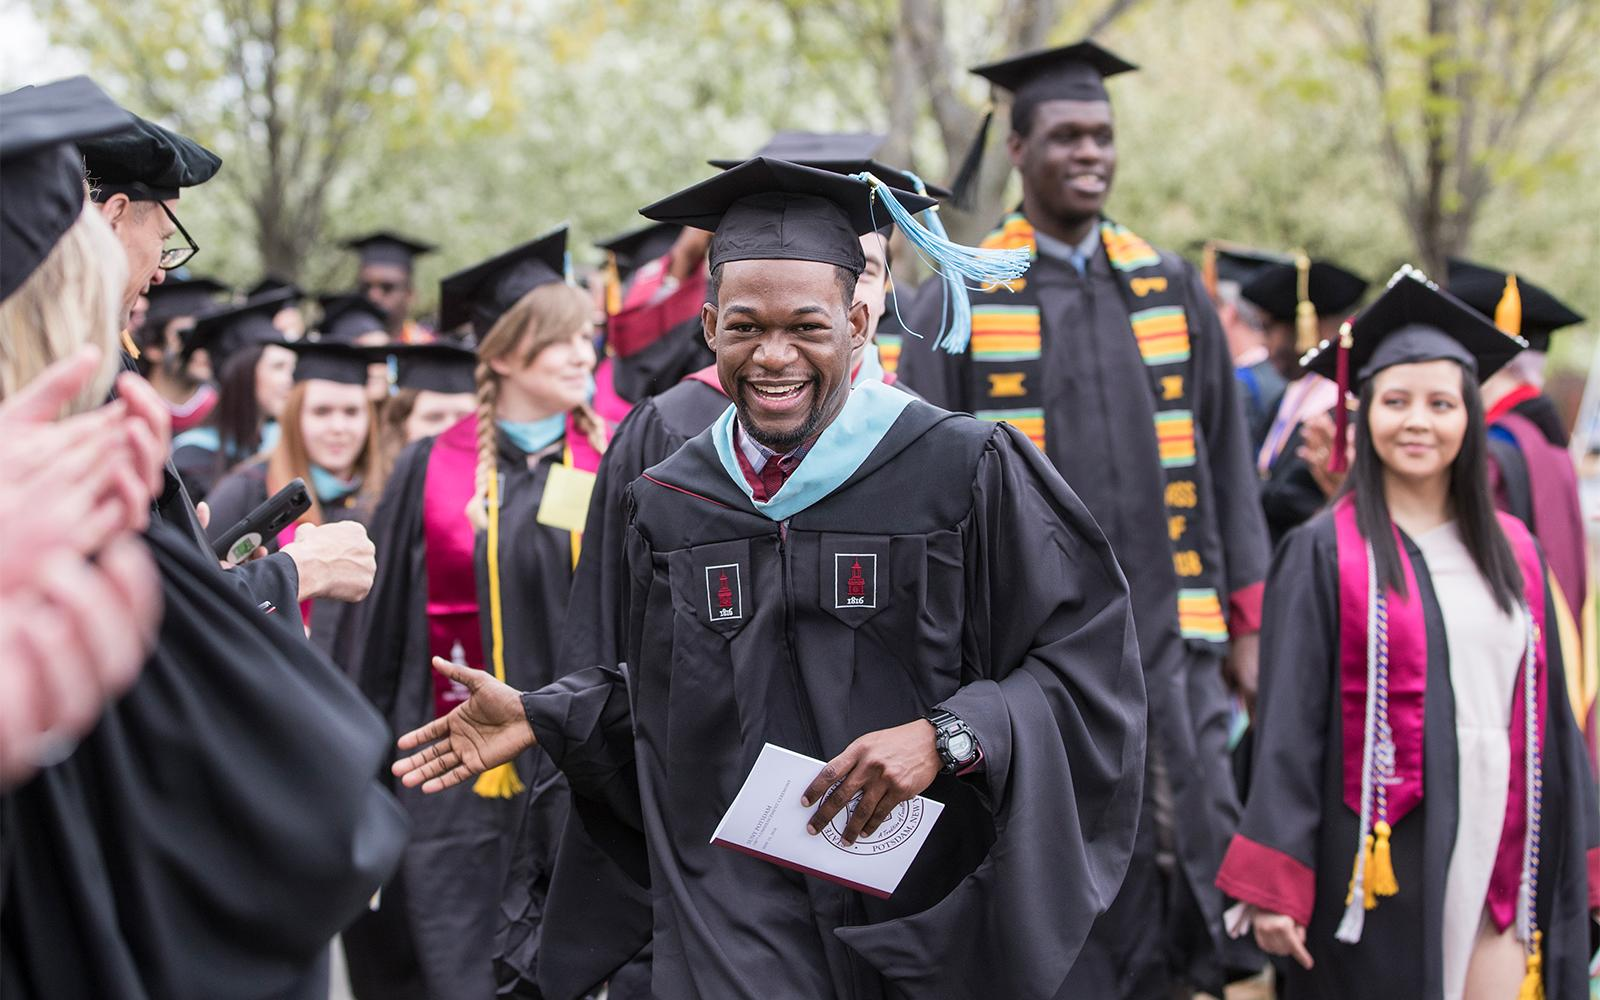 SUNY Potsdam Prepares to Celebrate Class of 2019 at Commencement